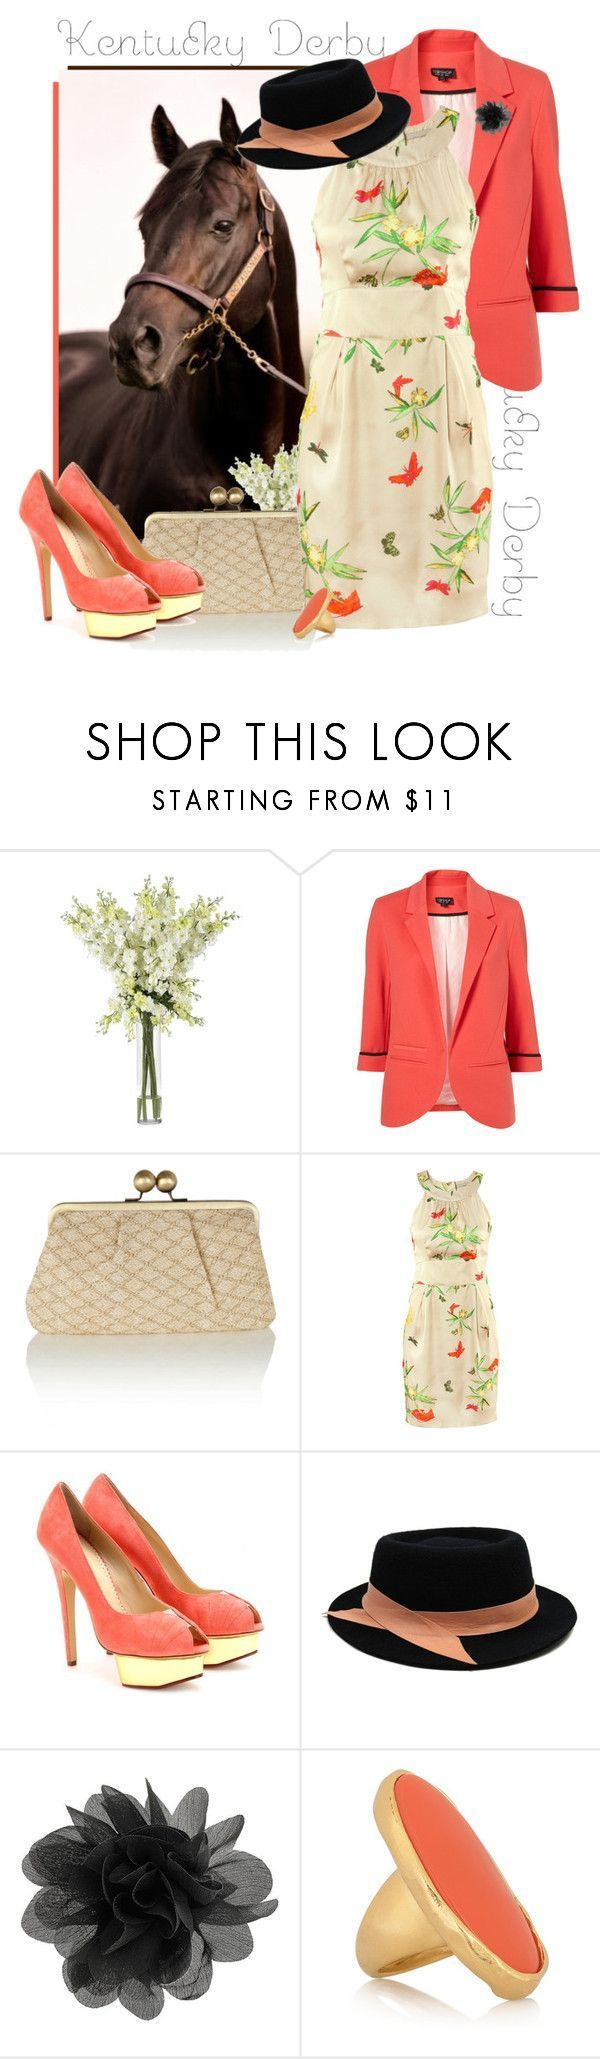 """""""Kentucky Derby"""" by bumblebeesfavorite ❤ liked on Polyvore featuring Nearly Natural, Oasis, H&M, Charlotte Olympia, Ann-Marie Faulkner Millinery, Dorothy Perkins, Kenneth Jay Lane, platform heels, floral dresses and cocktail rings #charlotteolympiaheelsdresses"""